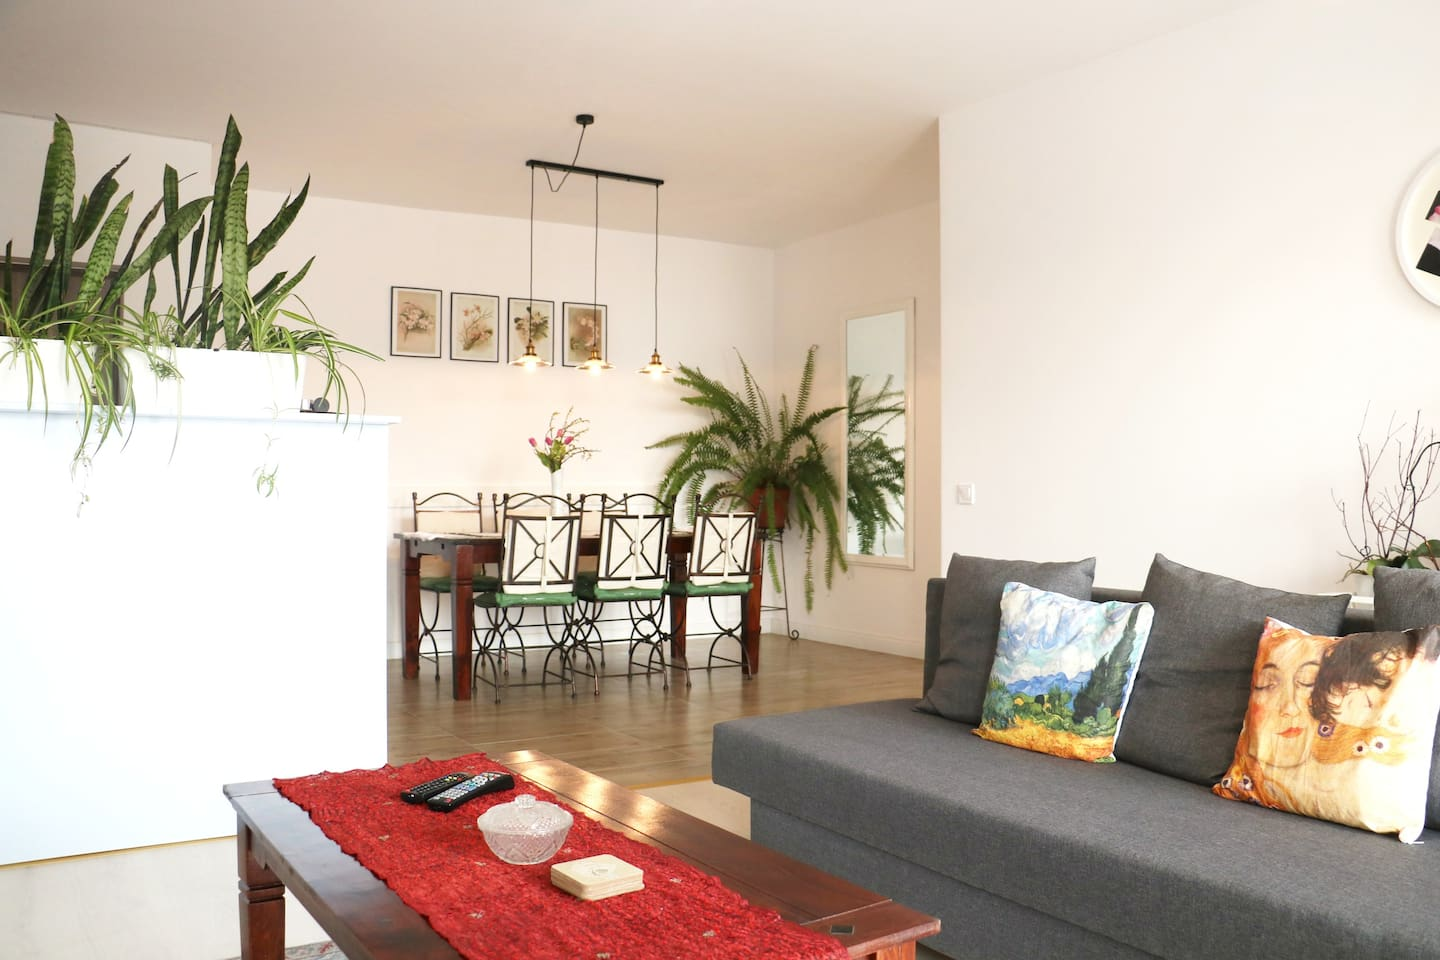 Enjoy the natural light in the living area.